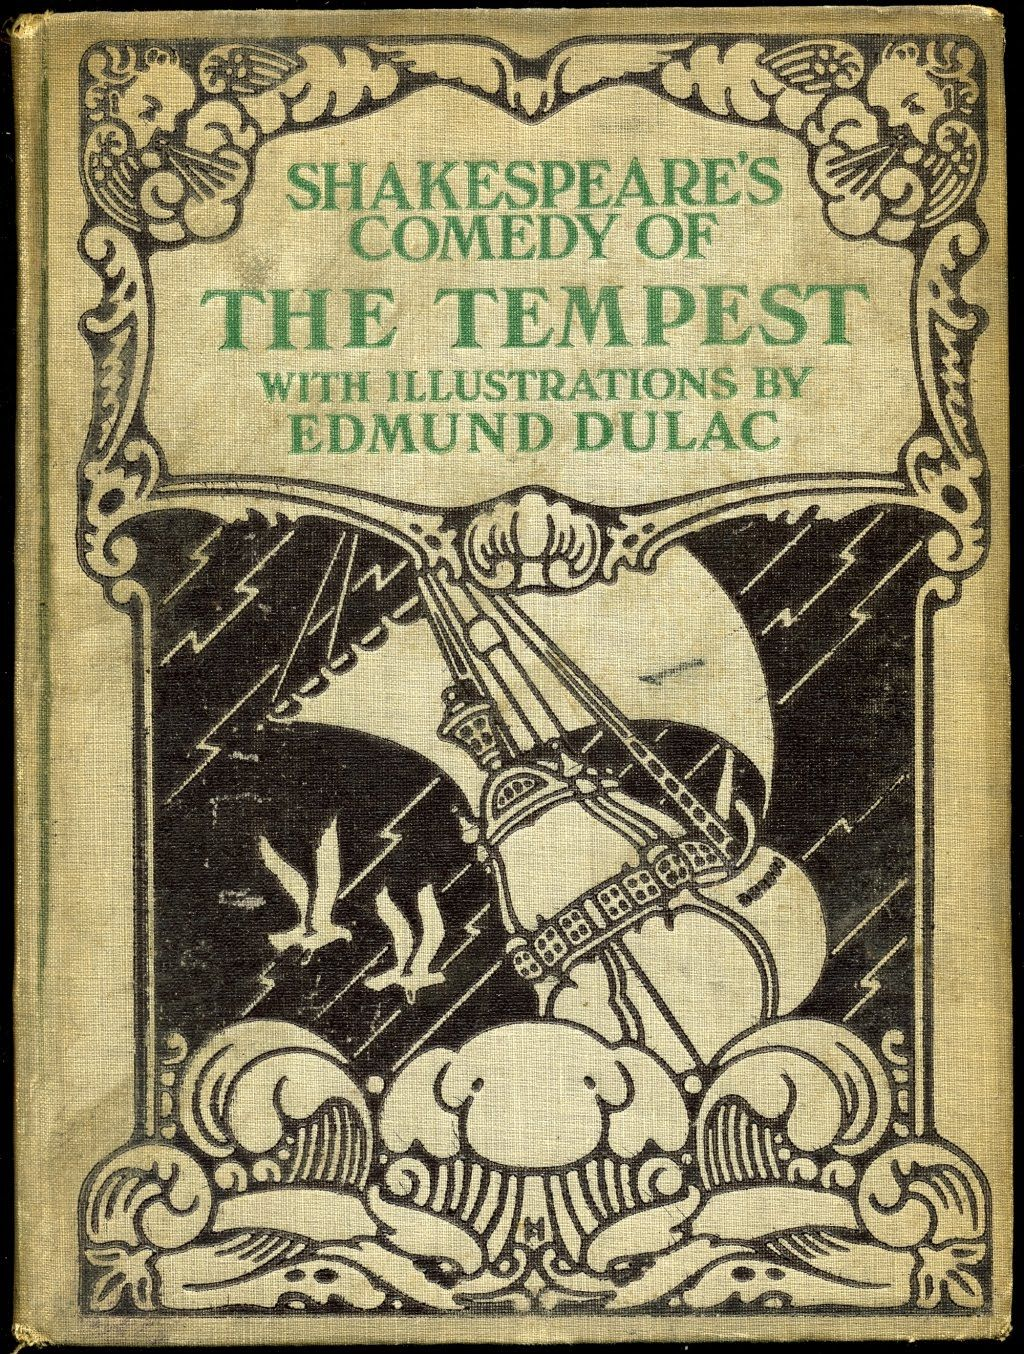 The Tempest Essay Topics Any Topic For Essay Choosing An Essay Topic  Shakespeare S The Tempest Edmond Dulac Cloth Edmund Dulac  Shakespeare  S The Tempest Edmond Dulac Prospero Essay Tempest Essay In English For Students also What Is The Thesis Of A Research Essay  Find A Business Plan Writer